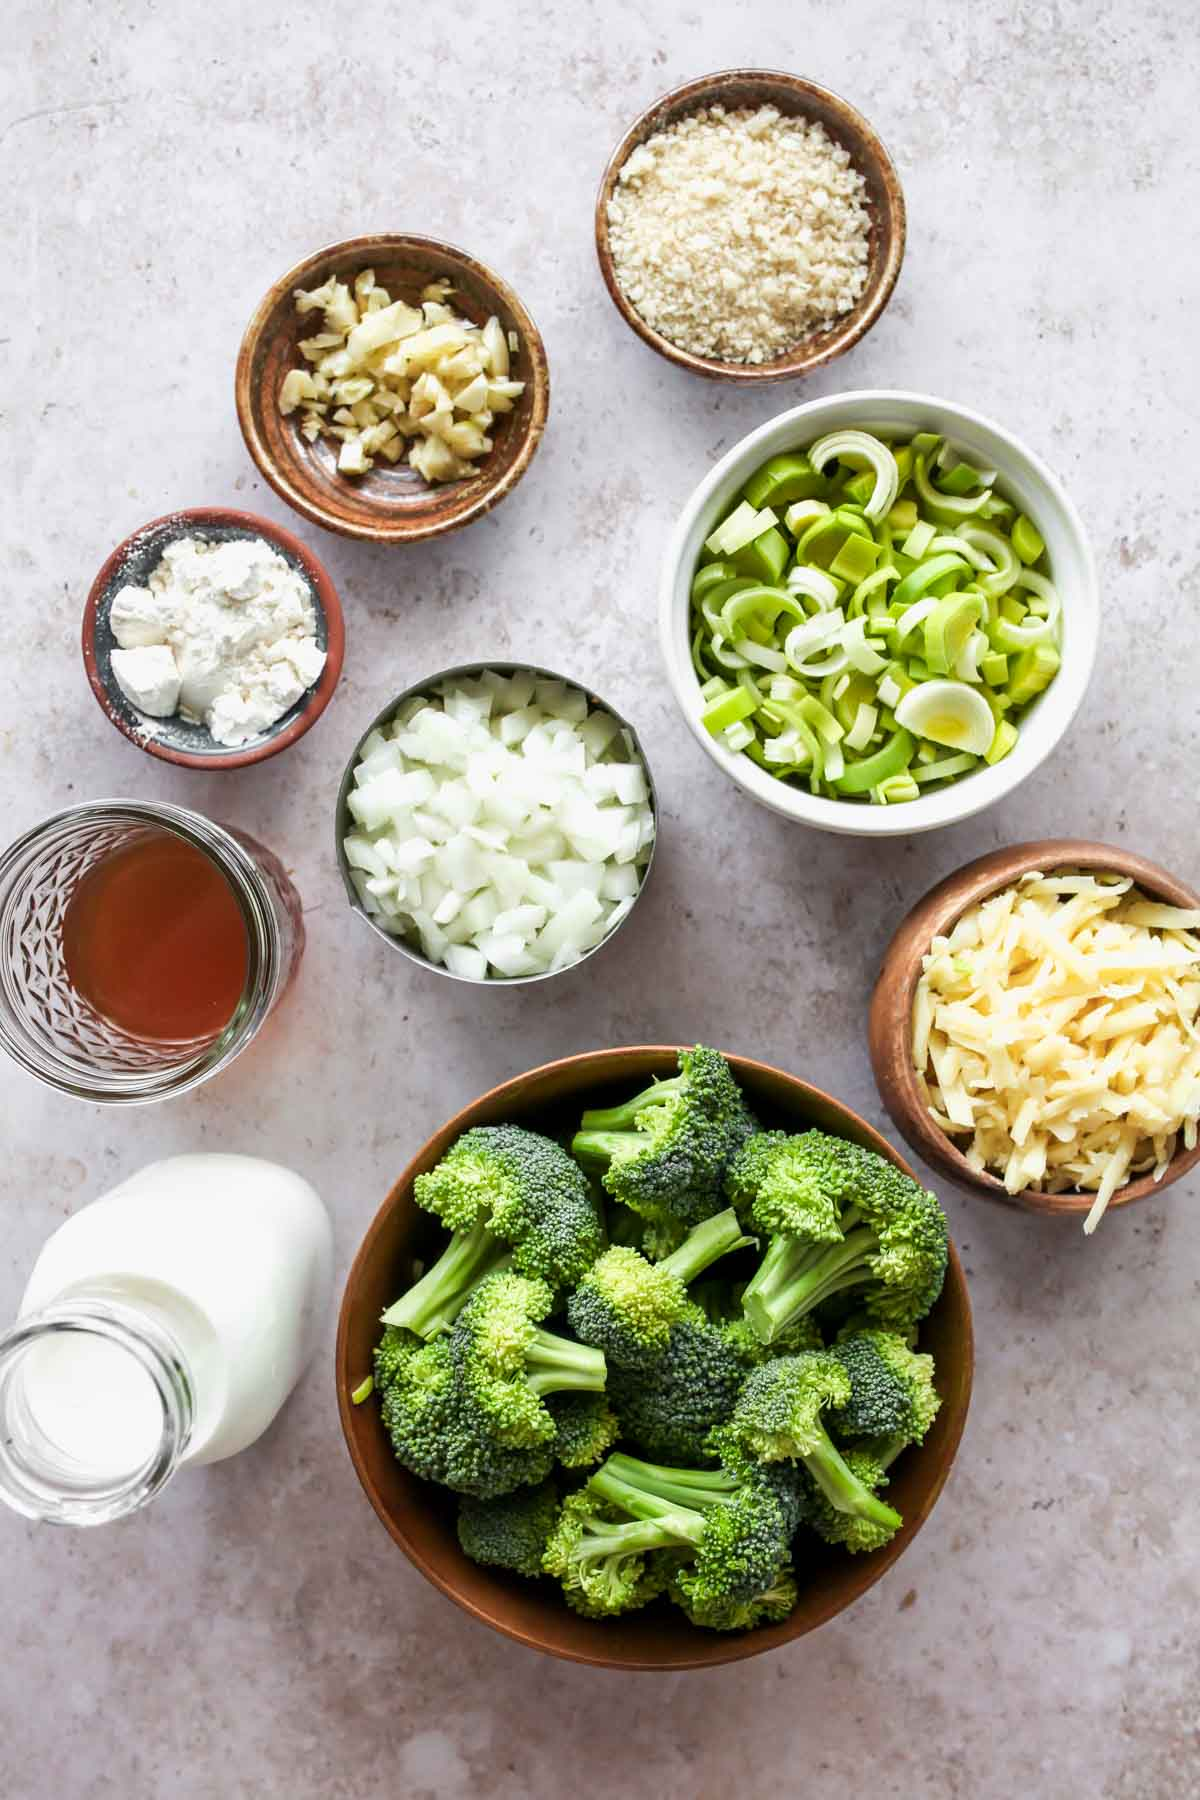 Ingredients for broccoli casserole in separate bowls on a white board